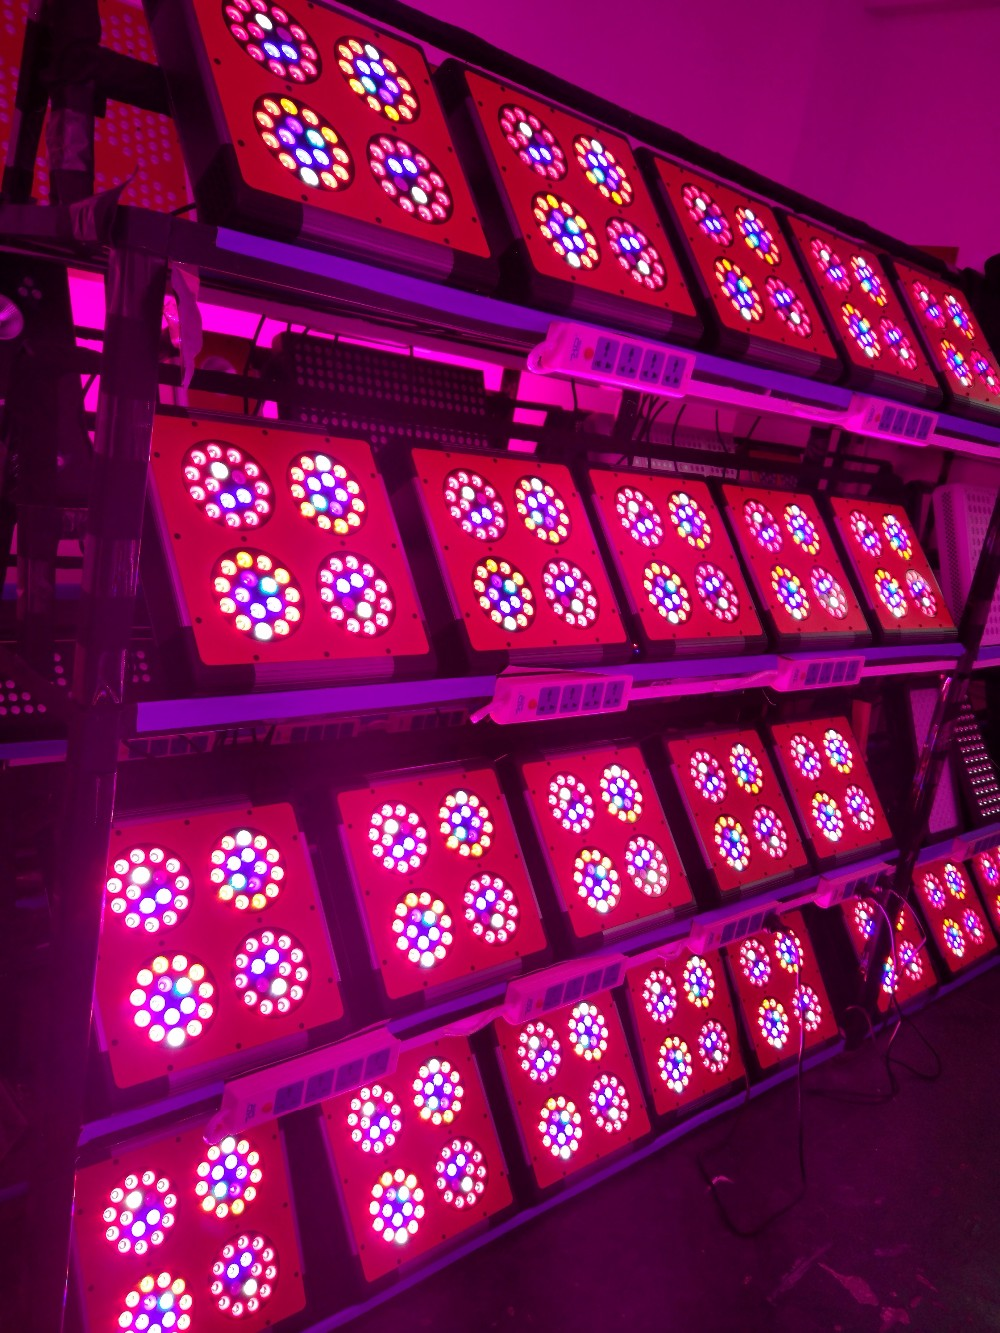 2017 Promotion Greenhouse Hydroponics 1000W 800W 500W 300W LED grow light 60 90 120 Degree Lenses for choose